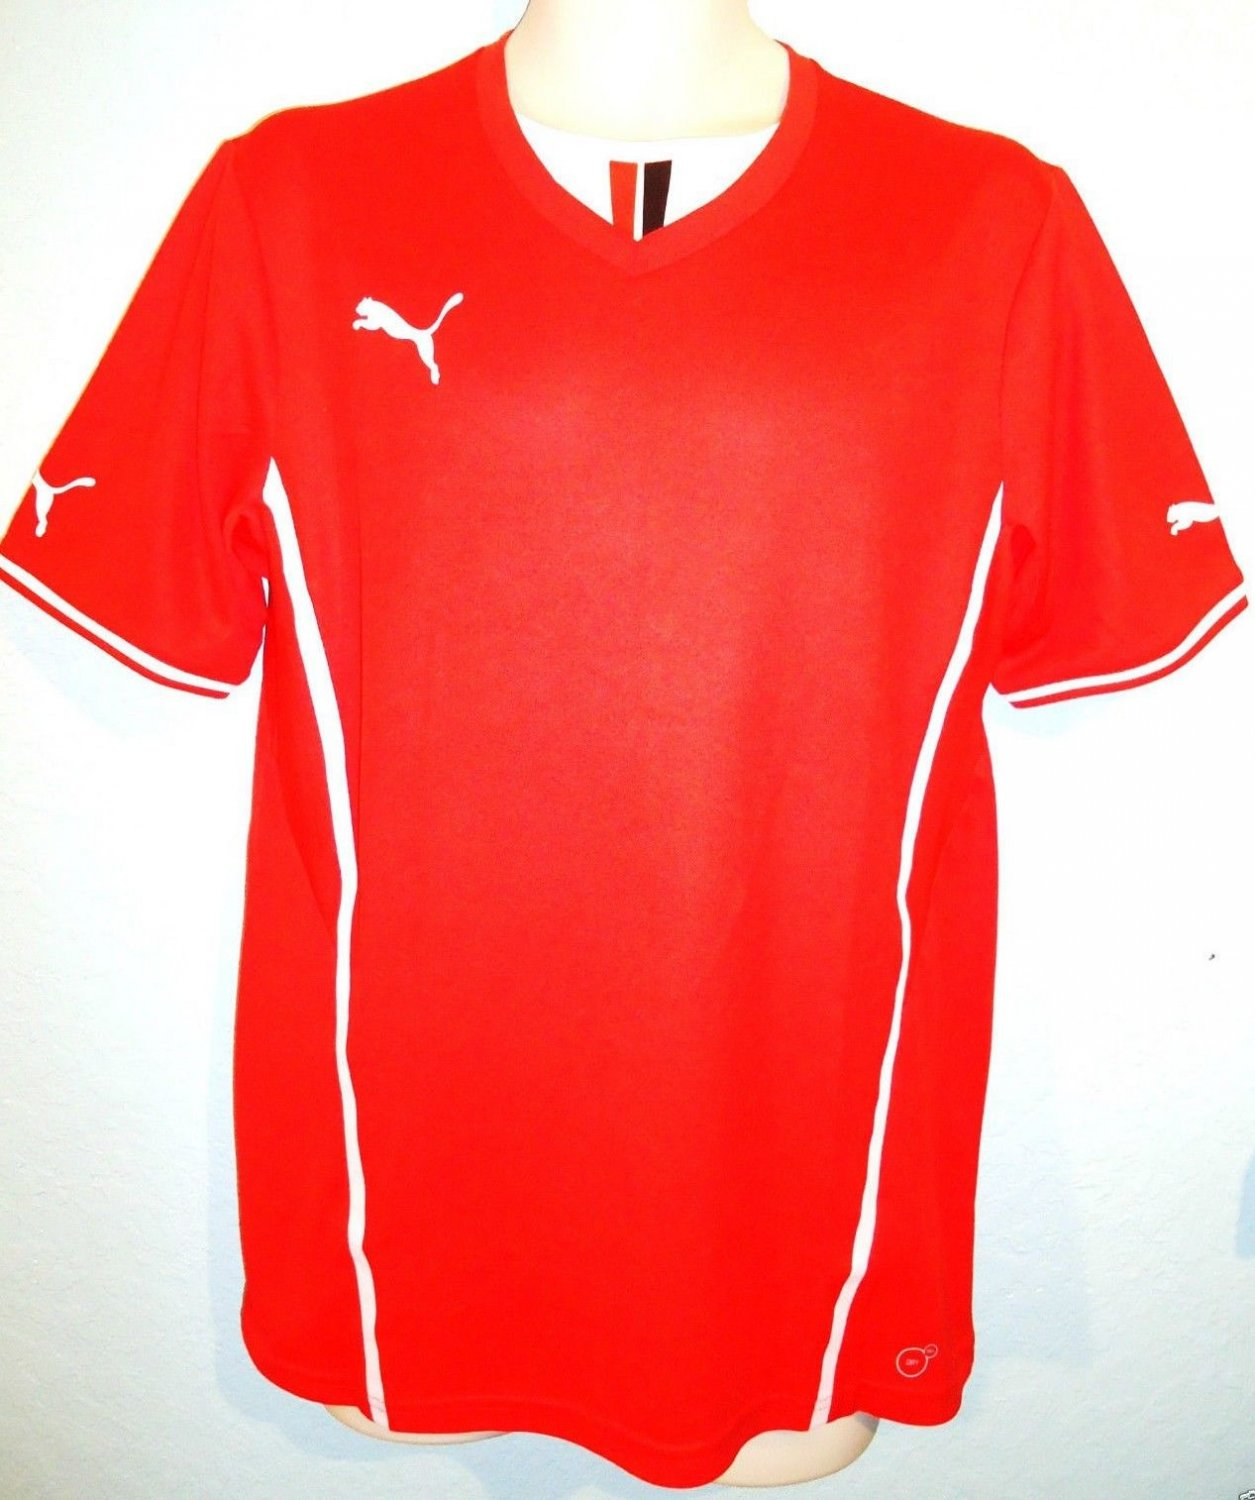 PUMA - DRY - CELL - LARGE - RED - SOCCER - JERSEY - SHIRT - MLS - NEW - SPORT